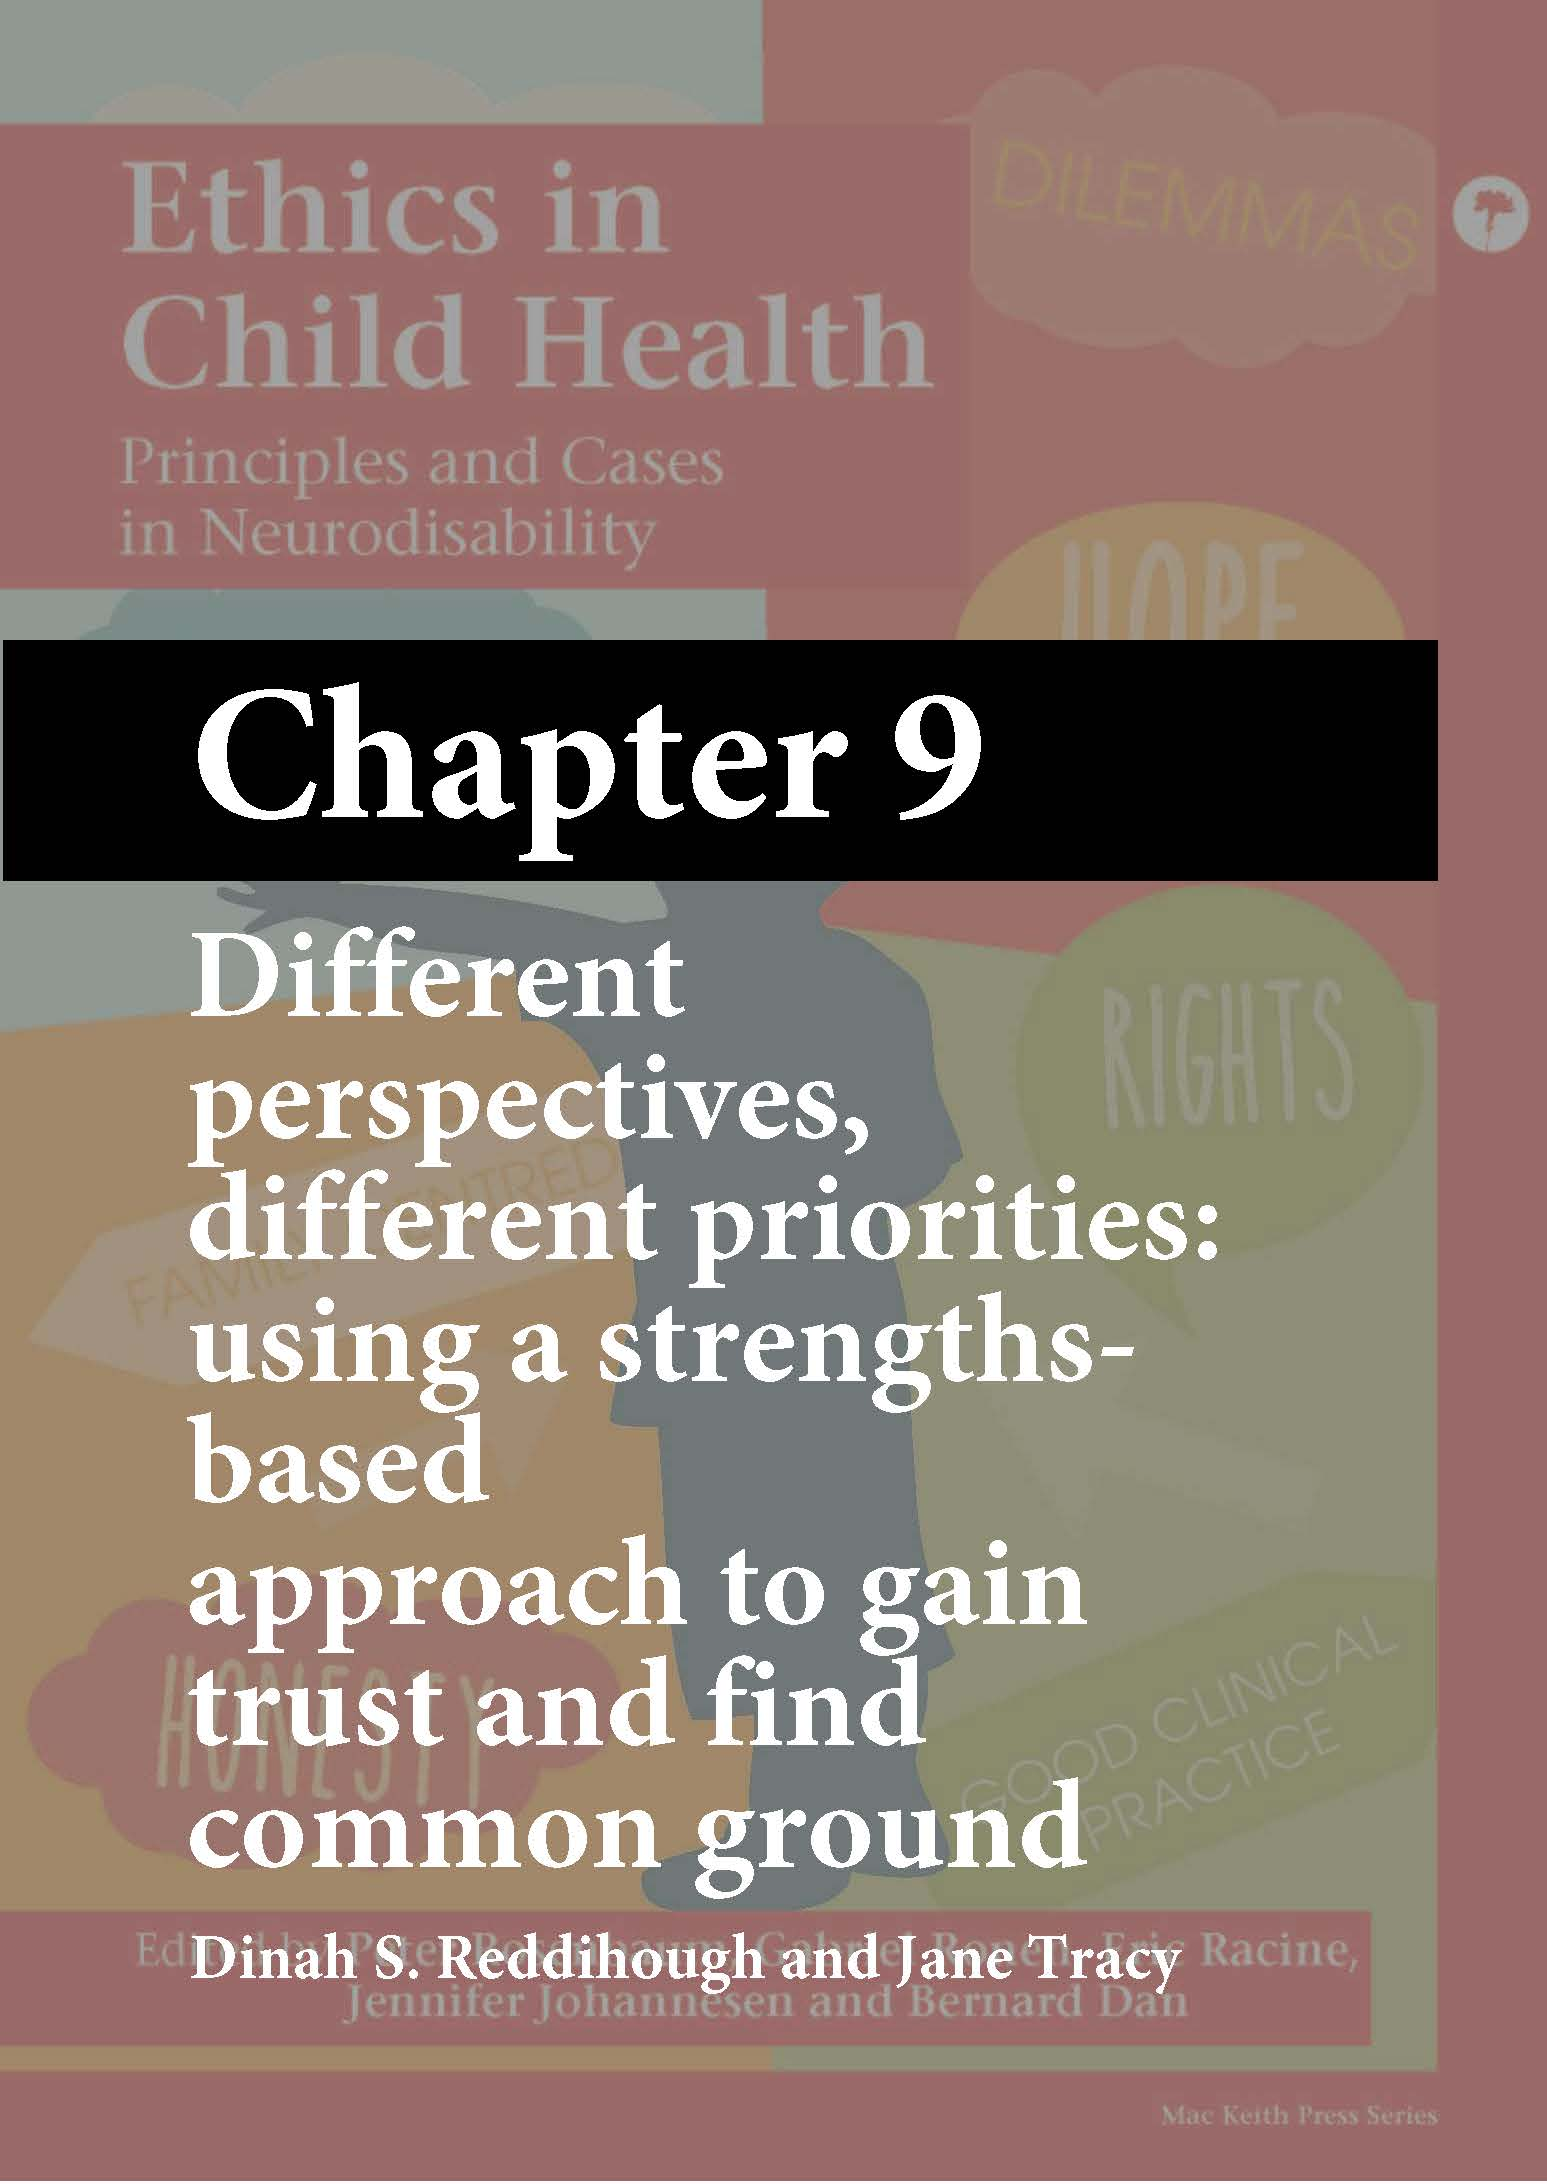 Ethics in Child Health, Rosenbaum, Chapter 9 cover